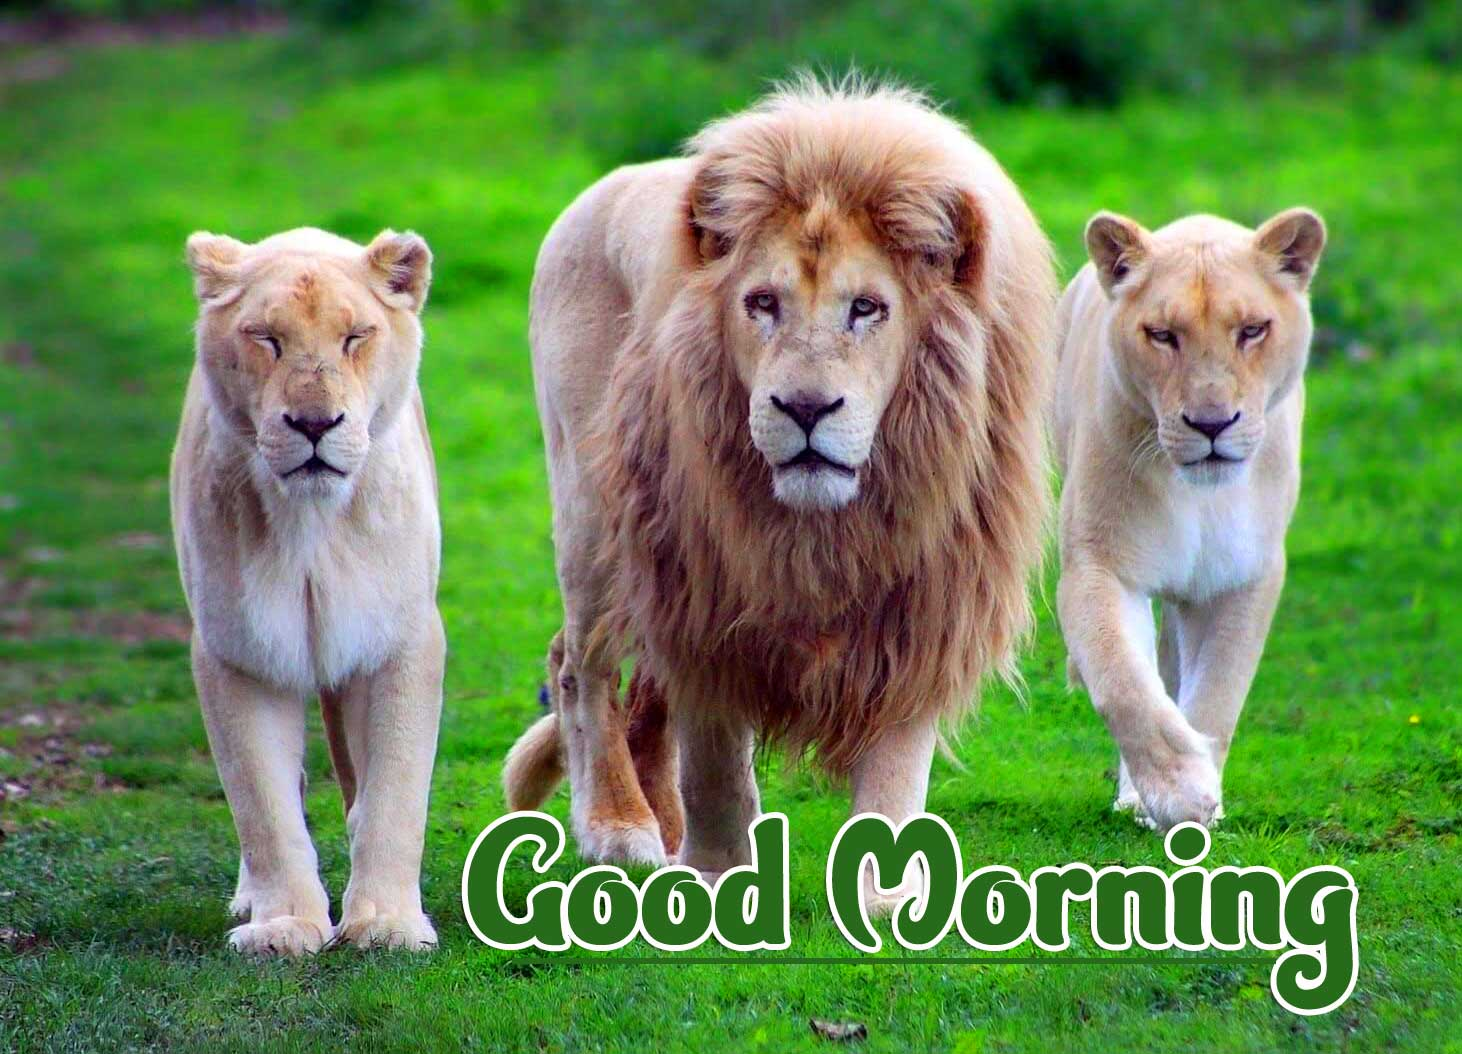 Animal Bird Lion Good Morning Wishes Pics Pictures Free Download